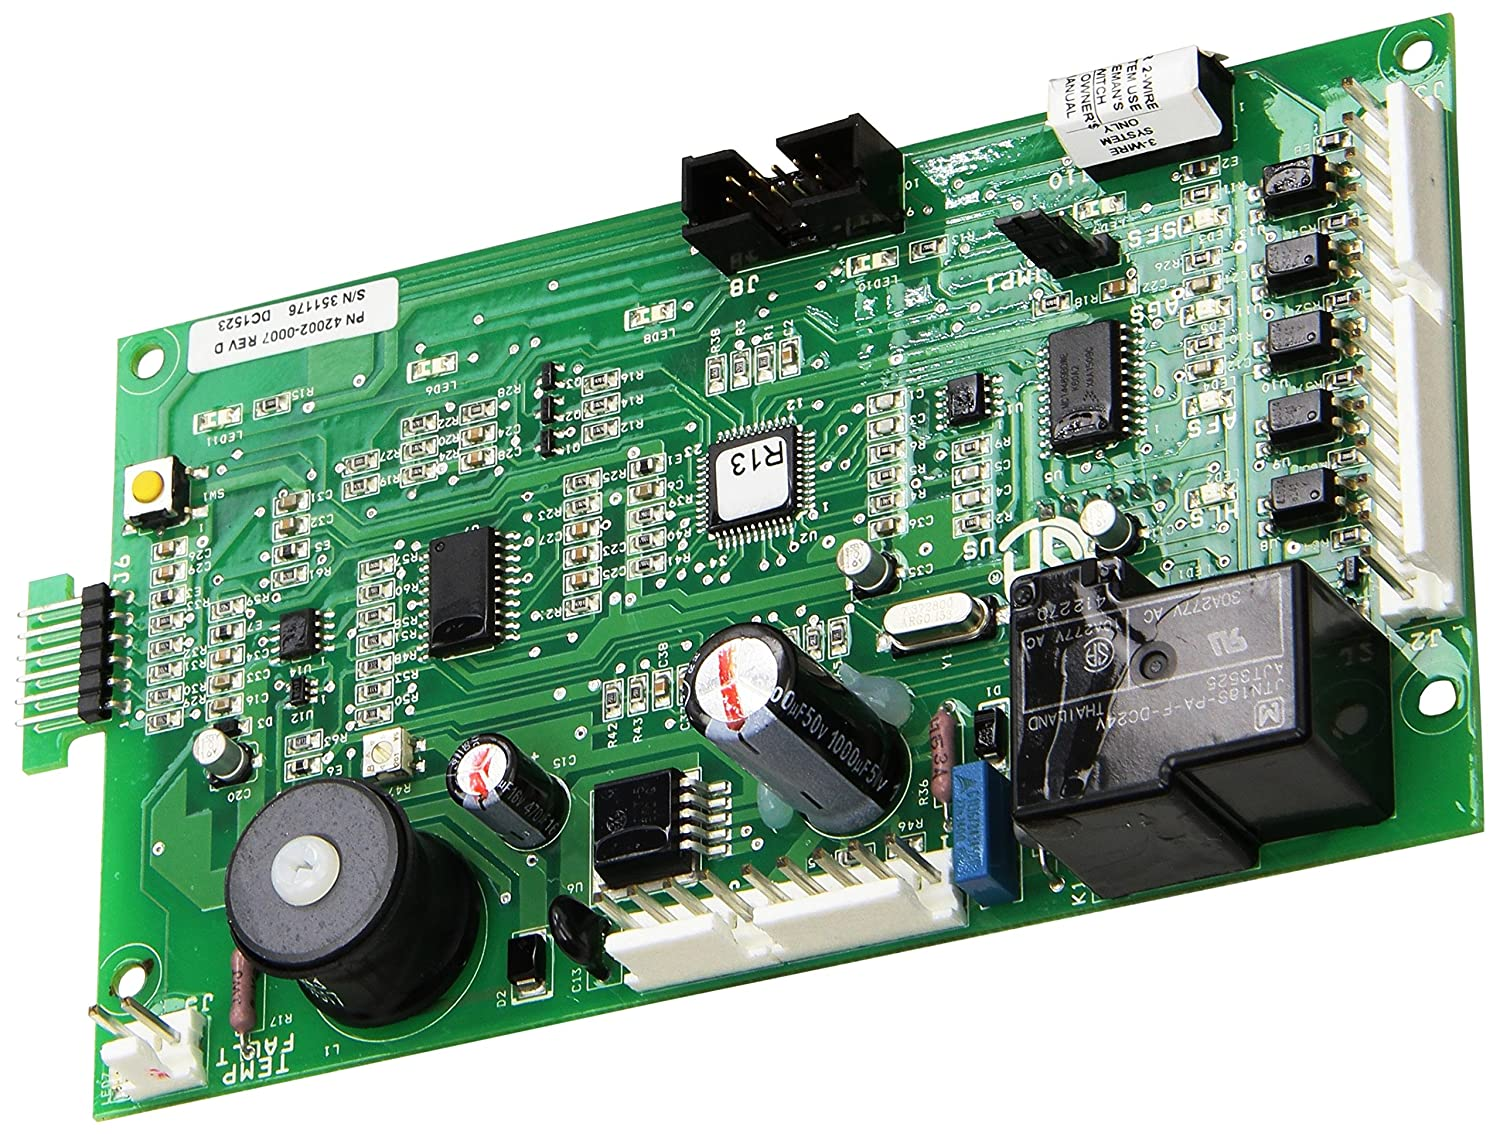 91MPfe7rR4L._SL1500_ amazon com pentair 42002 0007s control board kit replacement na stanley dura glide model j wiring diagram at virtualis.co